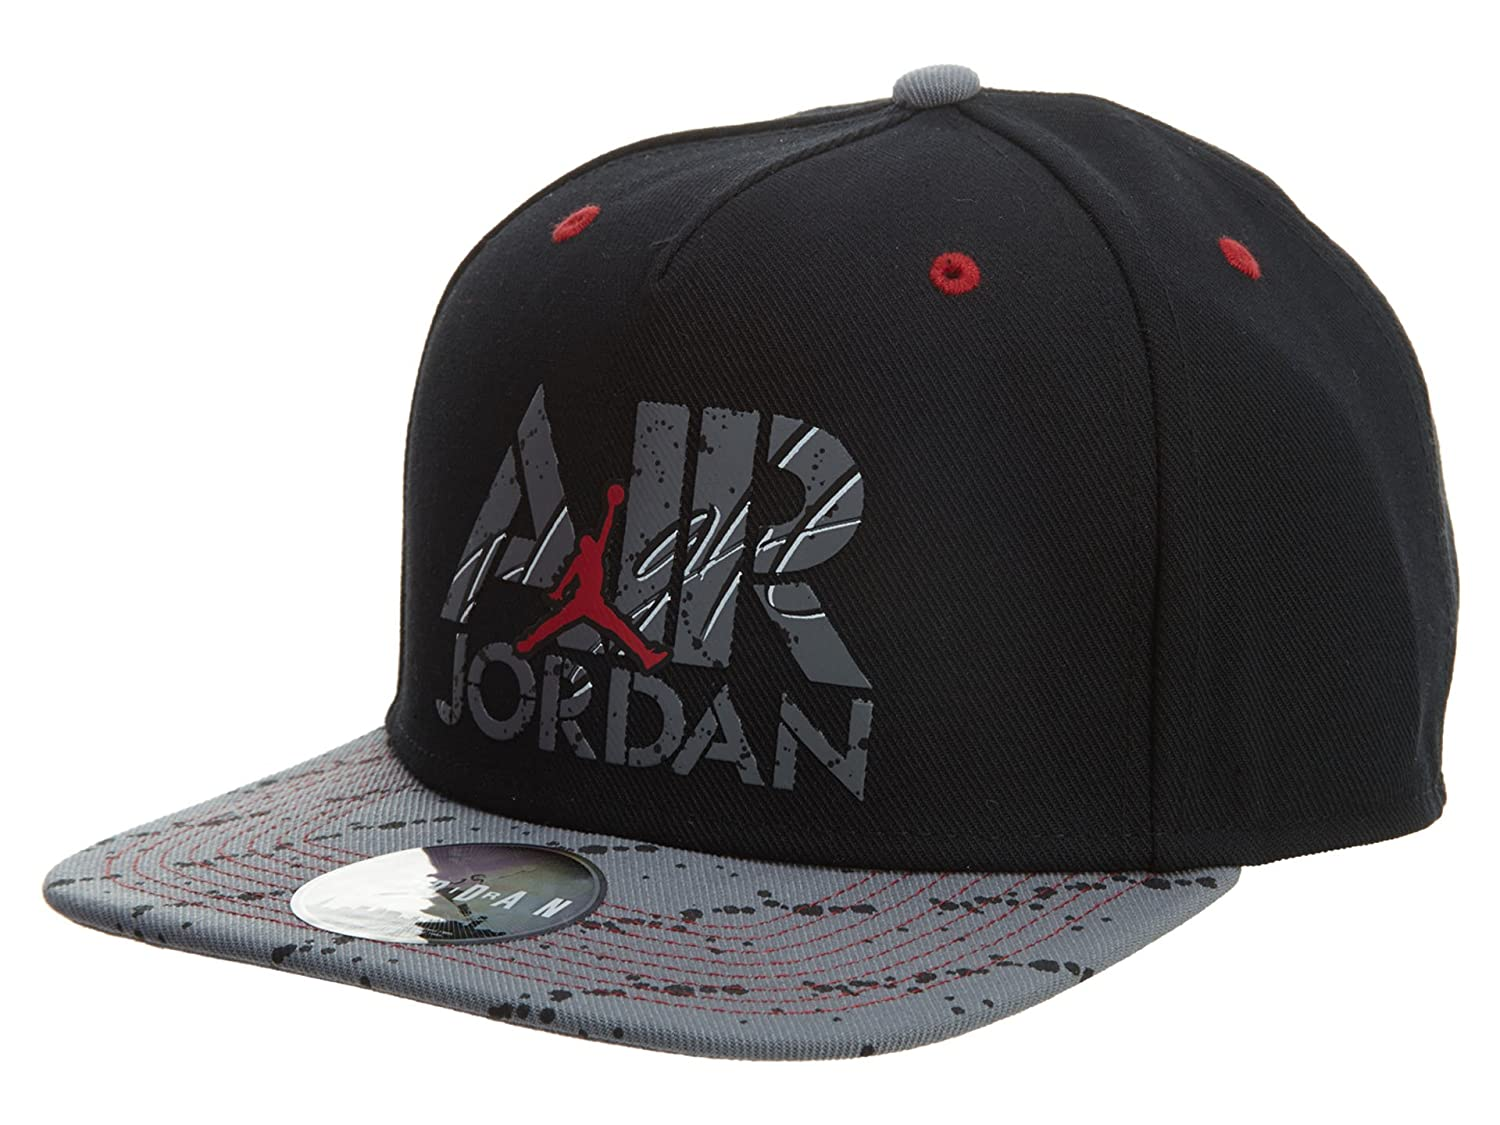 a8e2f106b295d Air Jordan Stencil Snapback Cap - Black/Cool Grey/White/Gym Red One Size  One Size: Amazon.co.uk: Sports & Outdoors